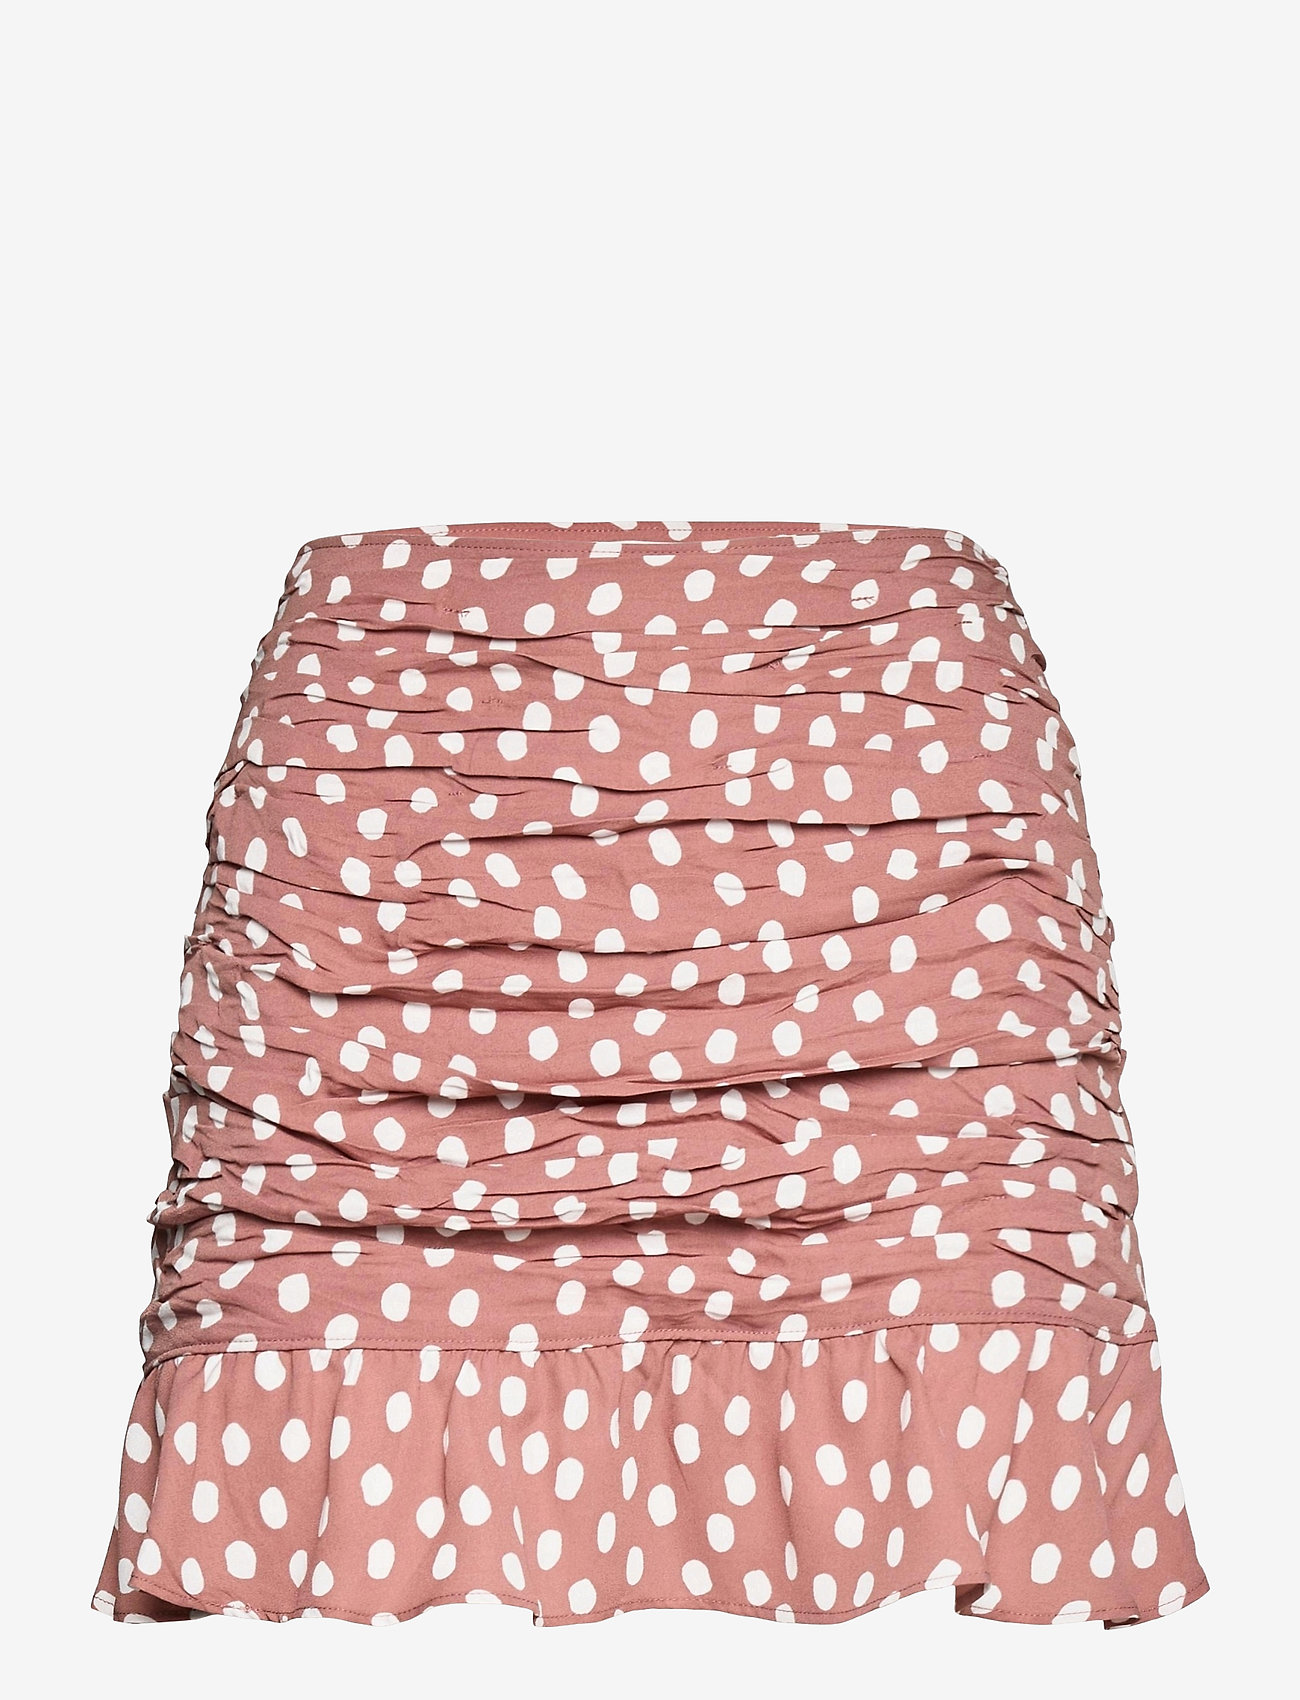 Abercrombie & Fitch - ANF WOMENS SKIRTS - korta kjolar - brown with white dots - 0